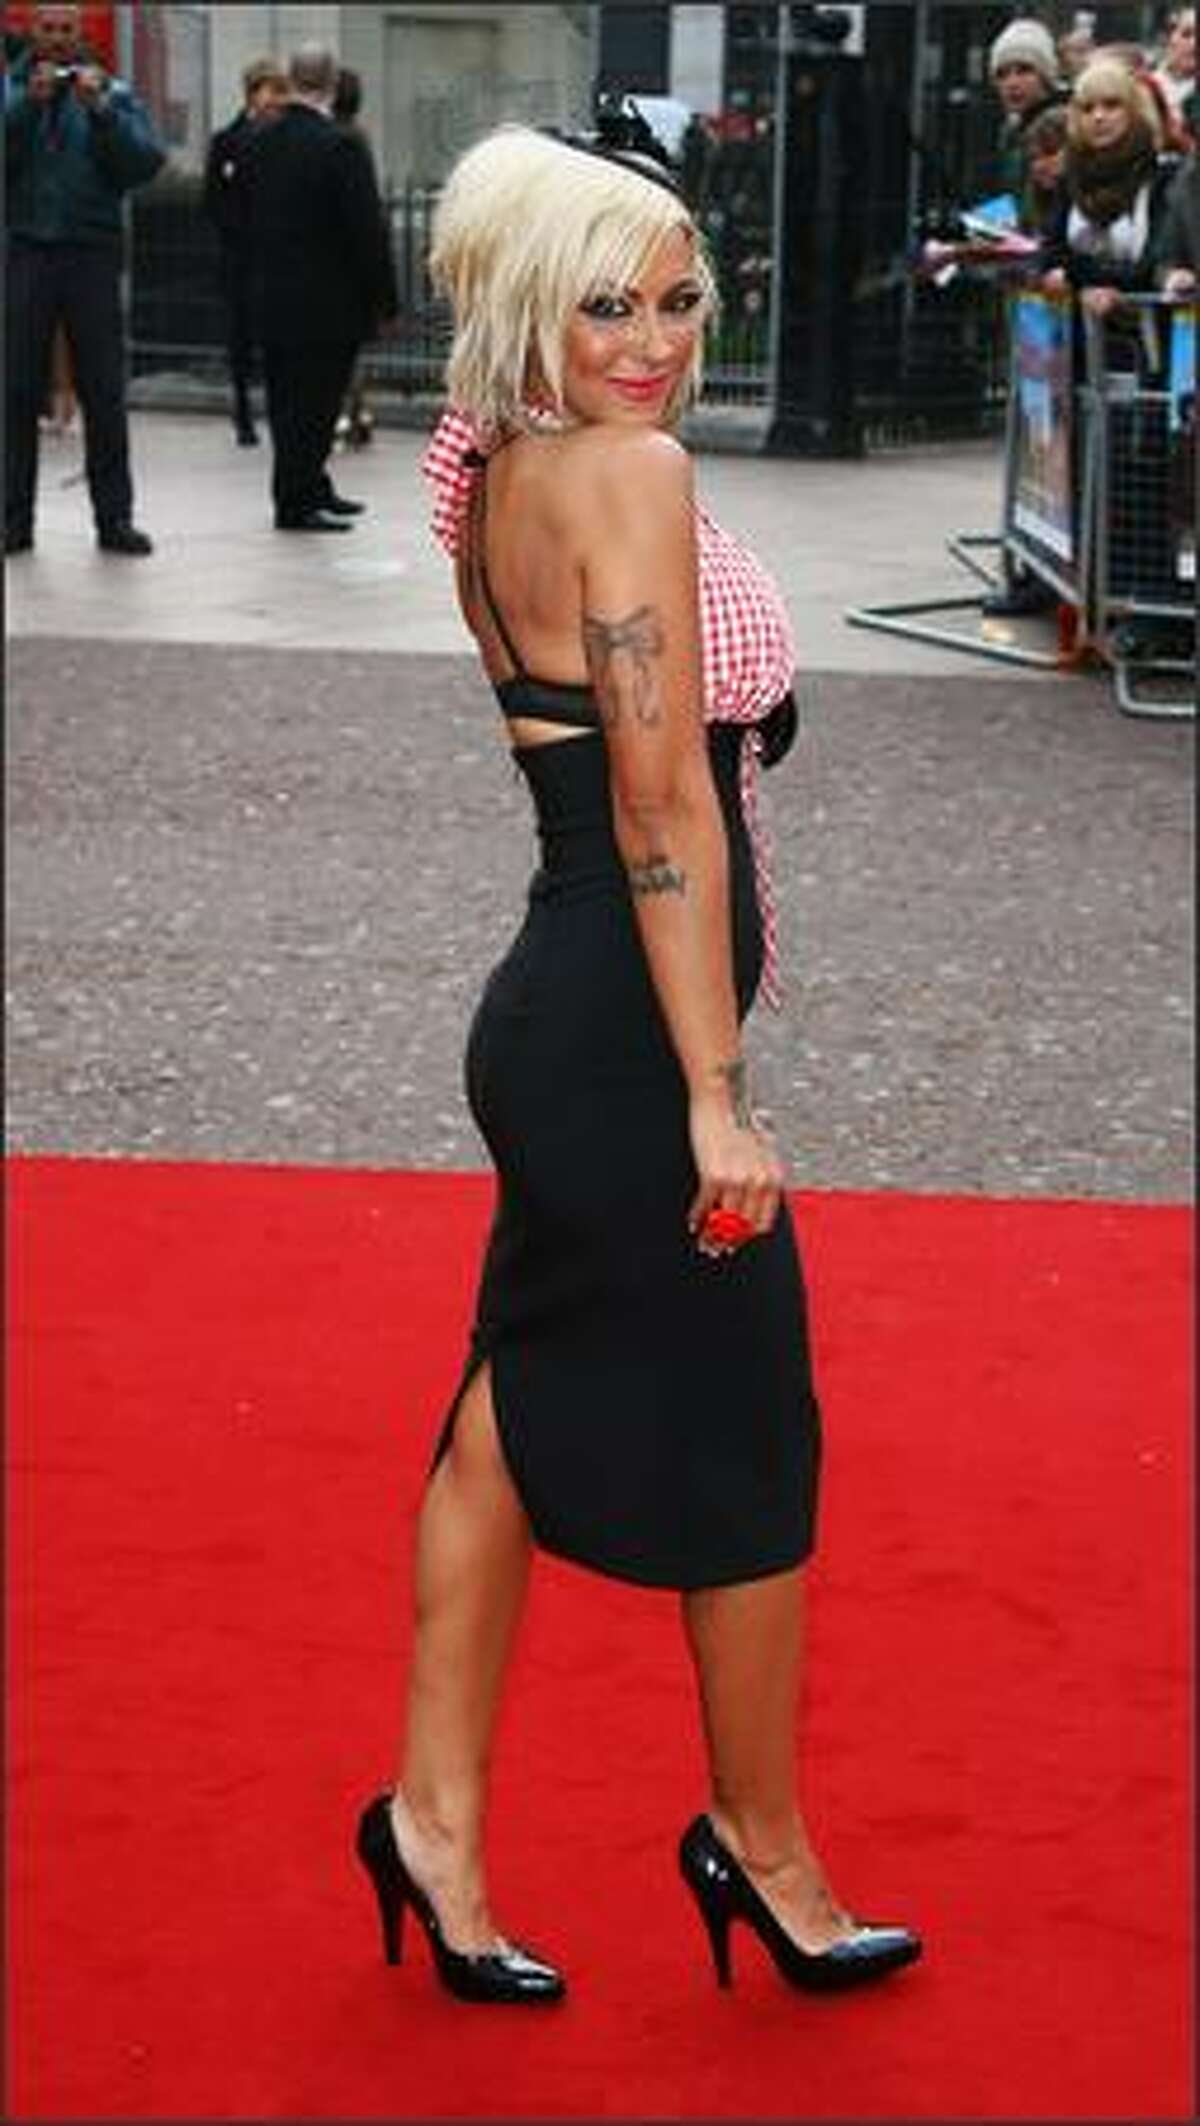 Model Jodie Marsh arrives at the World Charity Premiere Of 'Three And Out' at the The Odeon, Leicester Square on Monday in London, England.